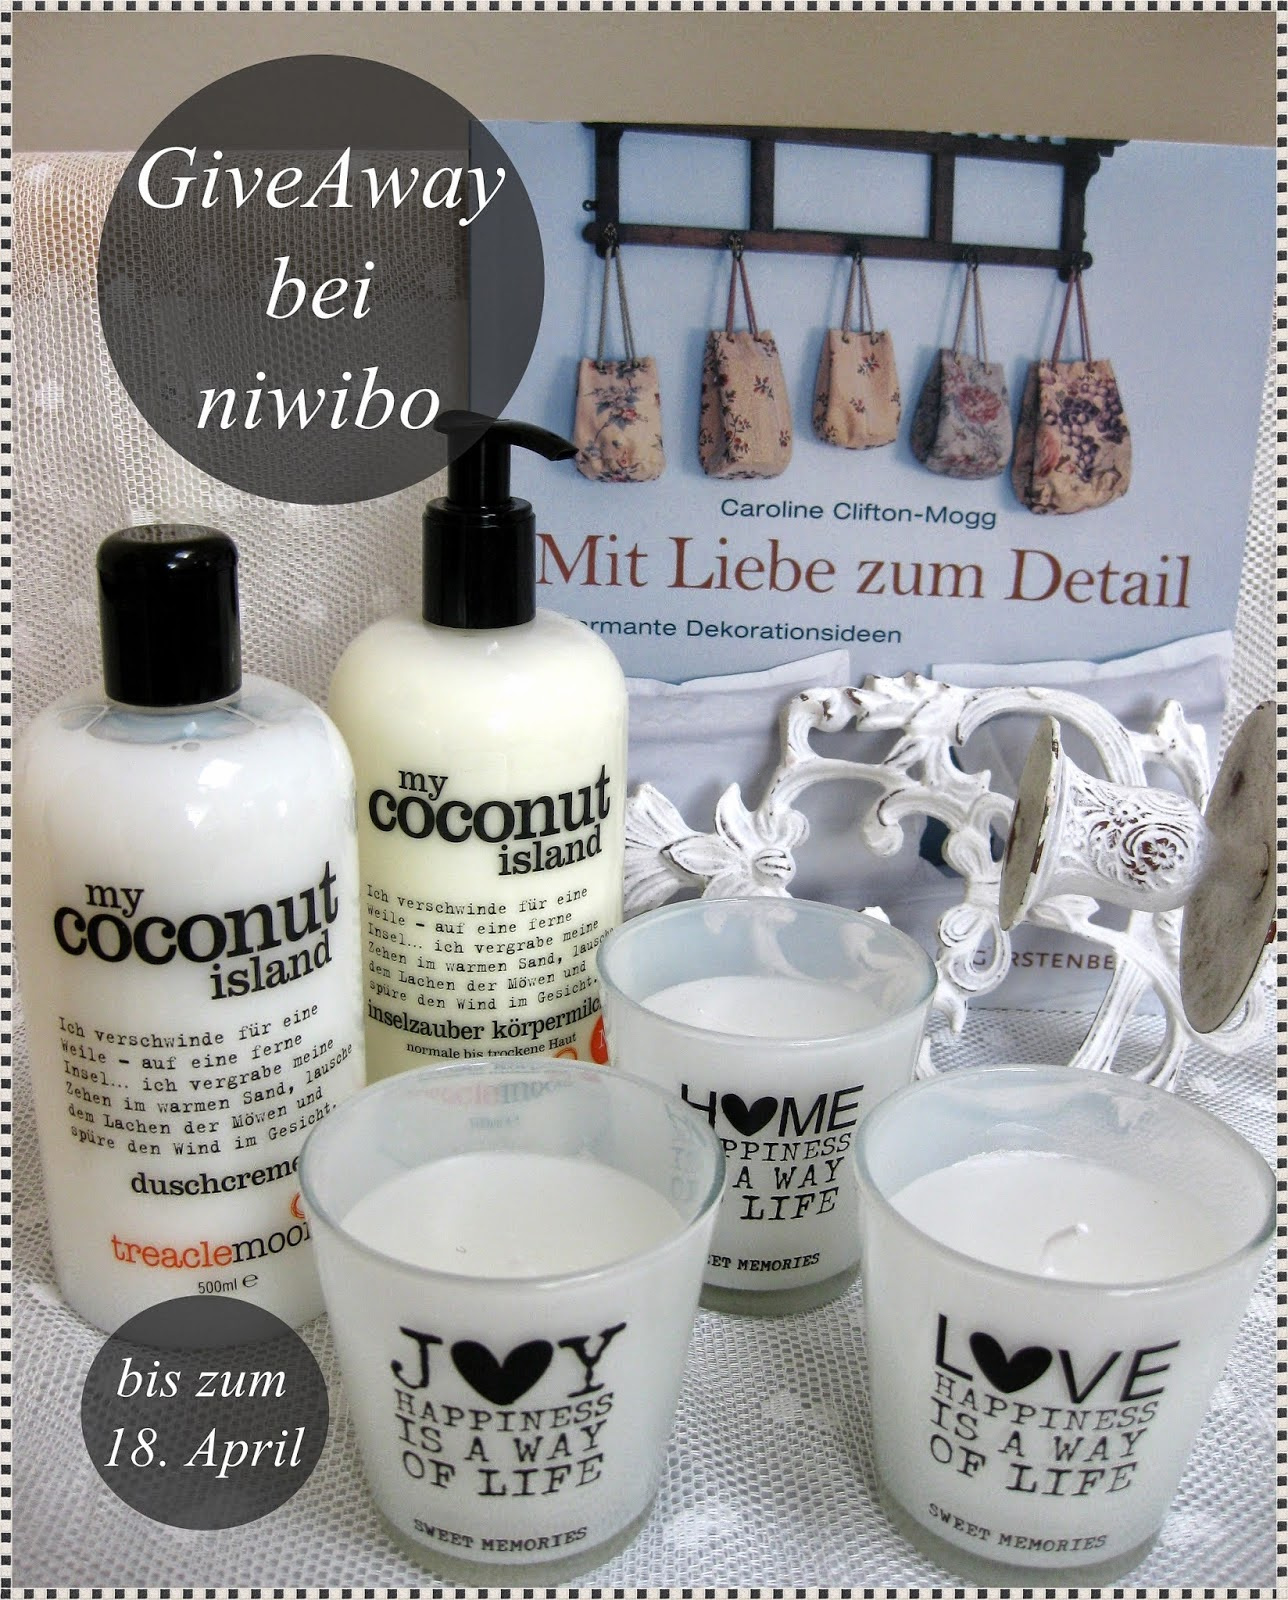 Give Away bei niwibo